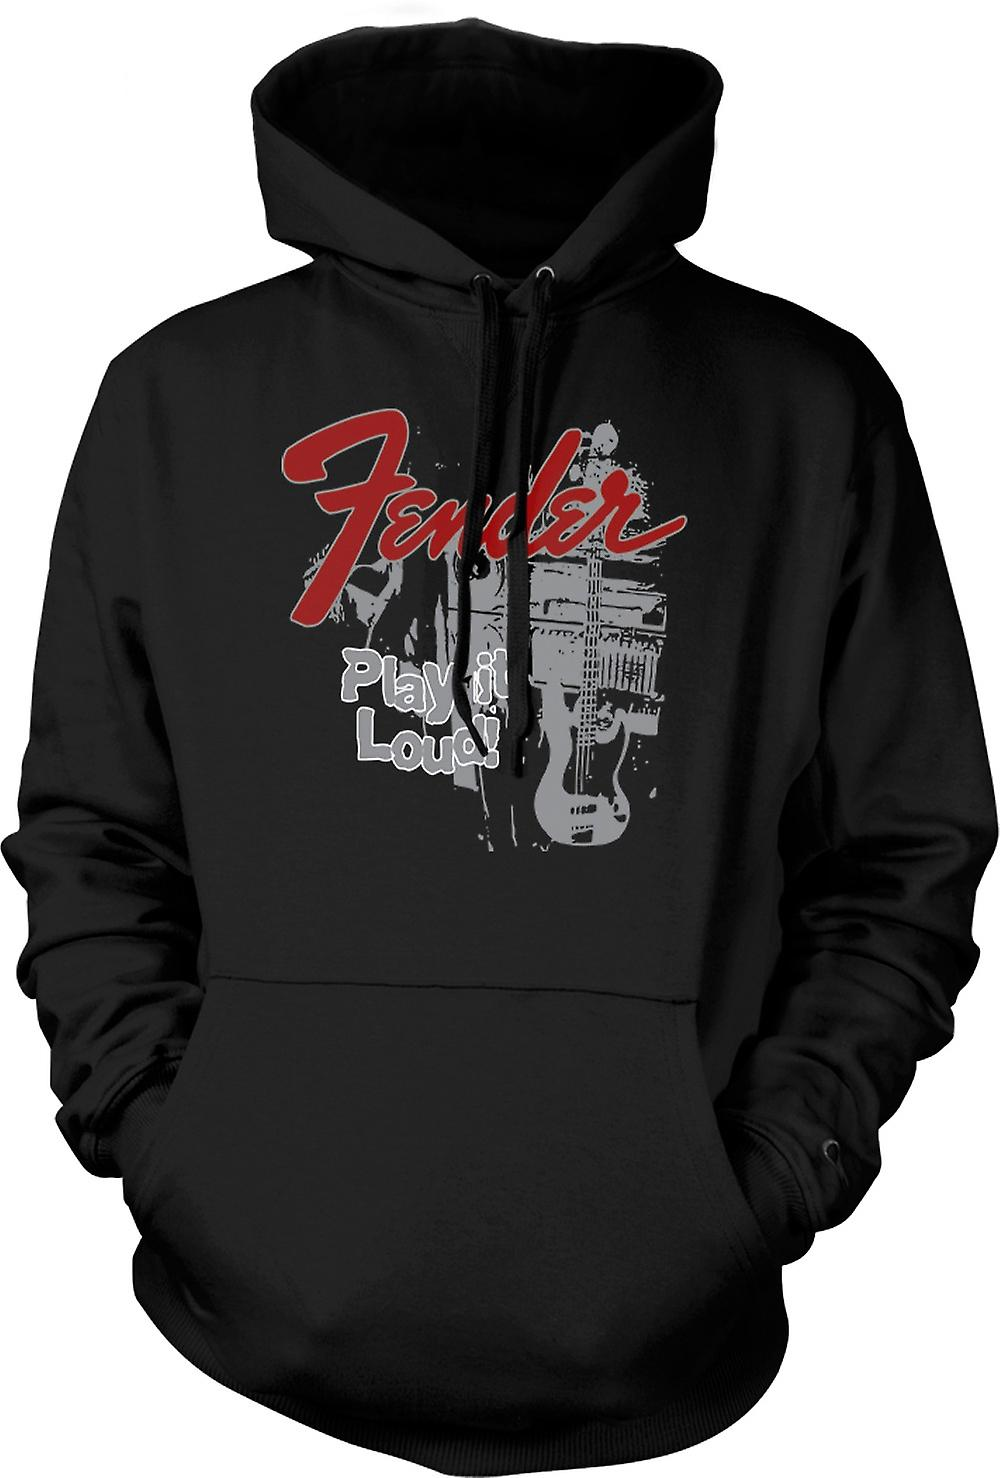 Kids Hoodie - Fender Strat Play Loud - Guitar